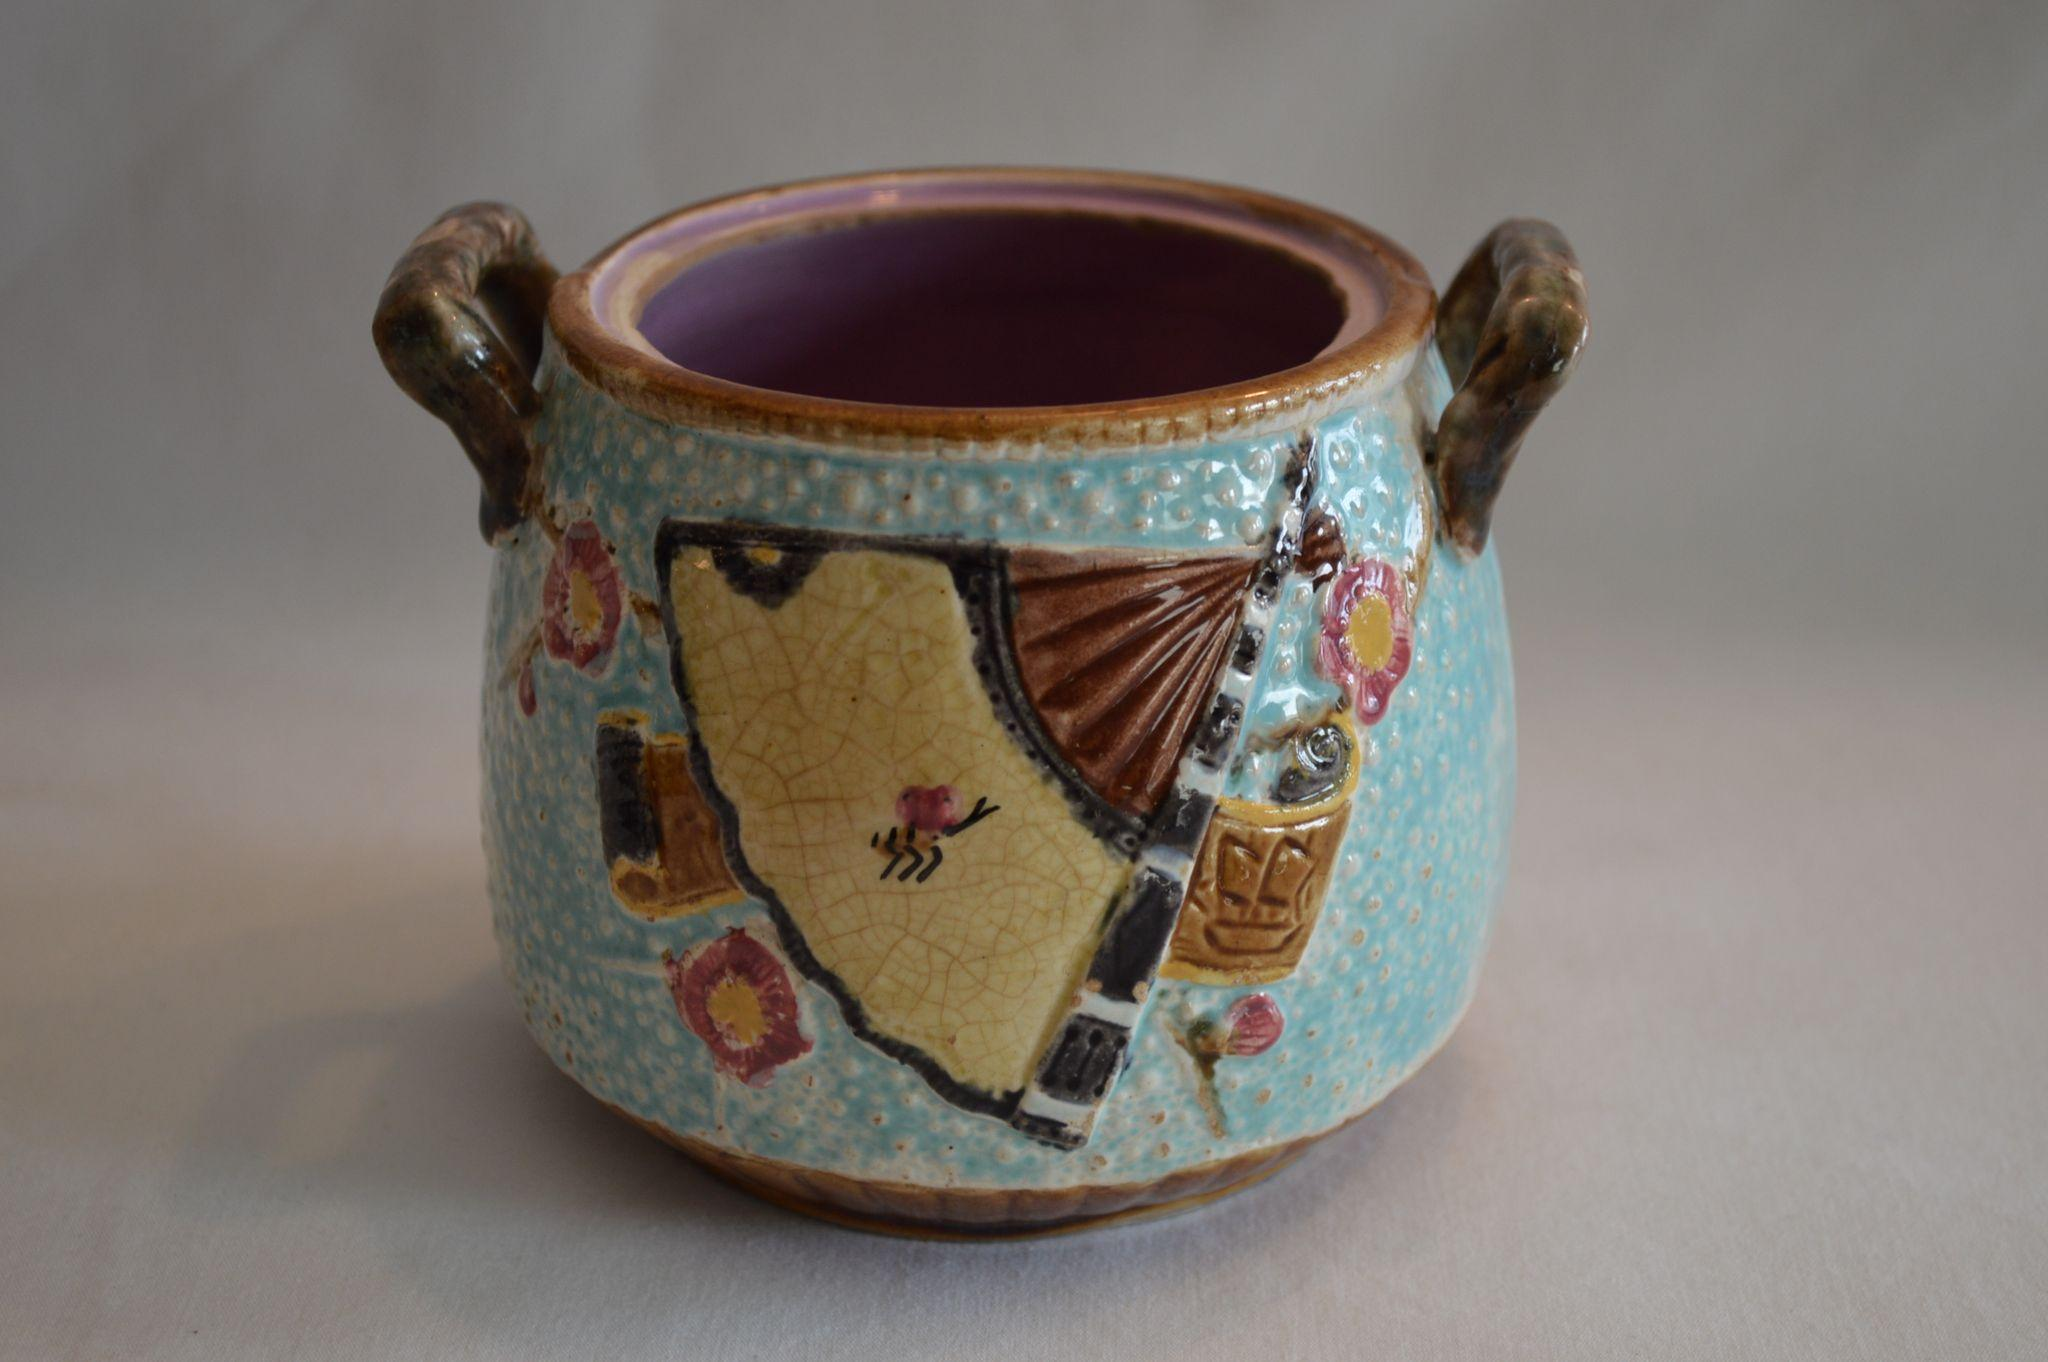 Wonderful English Majolica Open Sugar Bowl ~ Turquoise with Fan, Crane, Scroll & Insect ~ attributed to S Fielding & CO Stoke on Trent Staffordshire England 1880